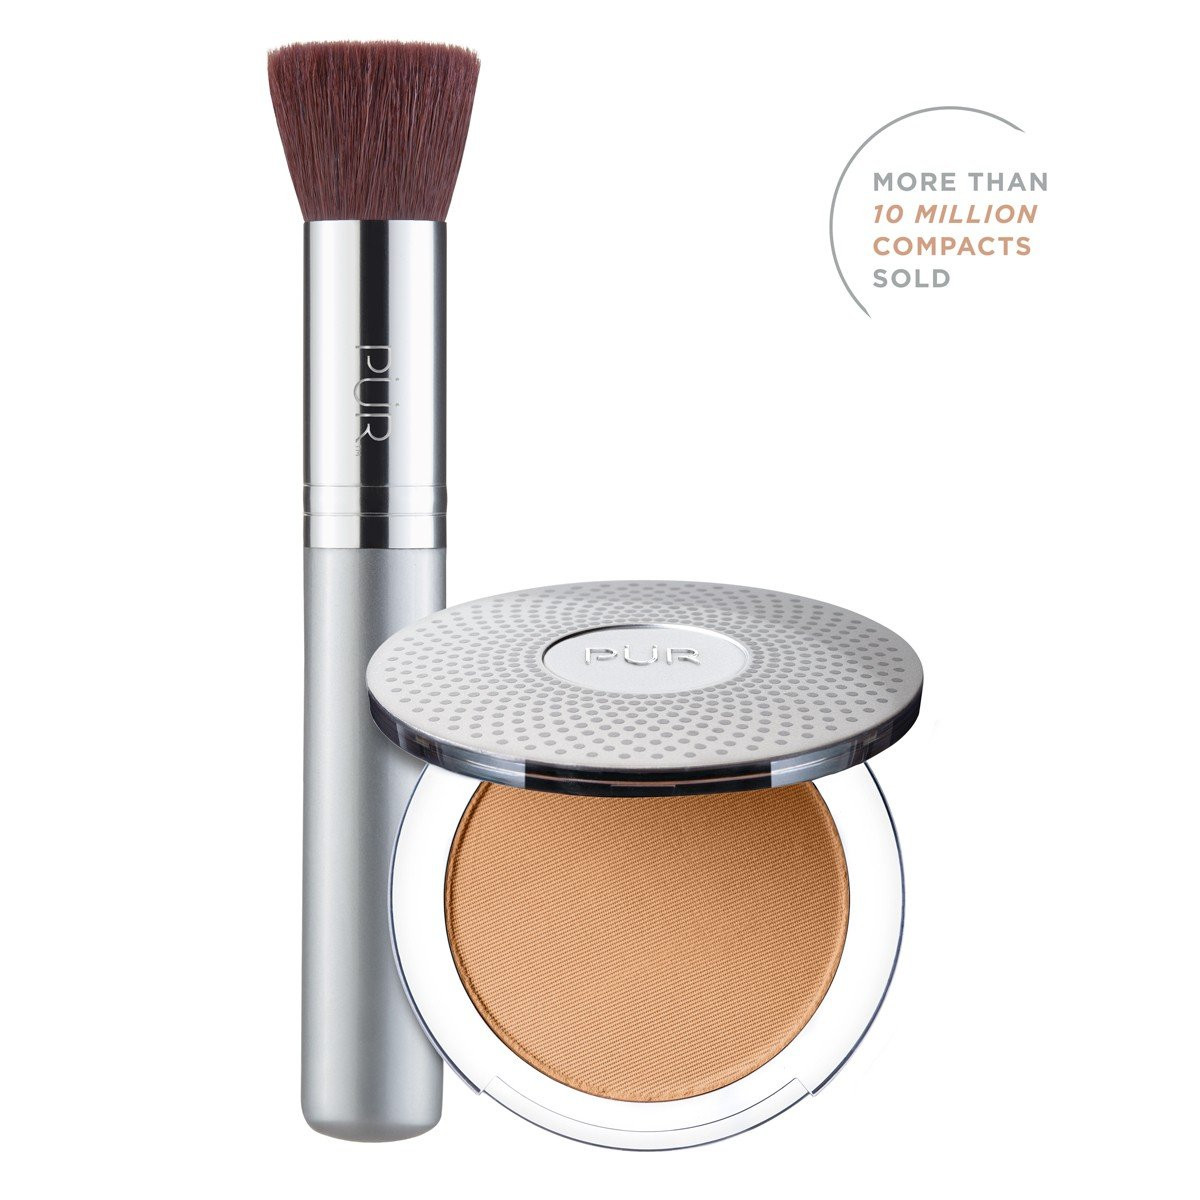 TRY PÜR! 4-in-1 Pressed Mineral Makeup and Brush Kit in Tan